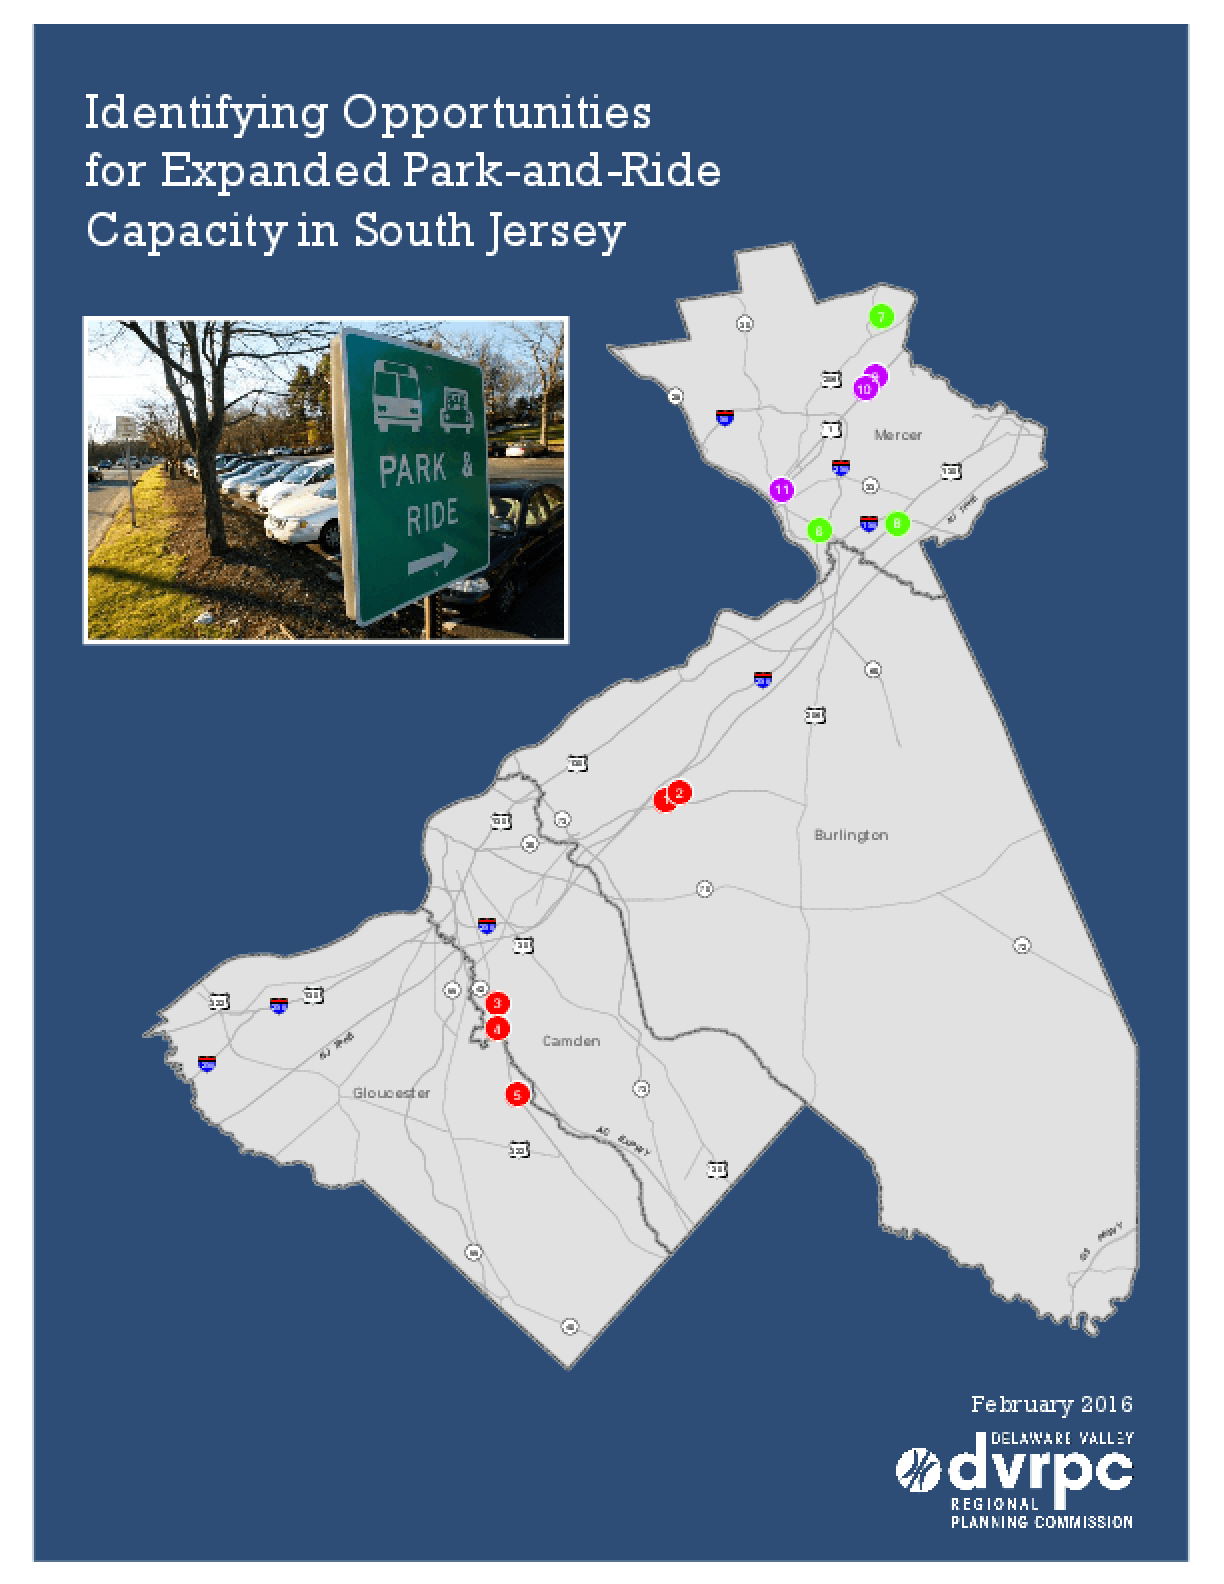 Identifying Opportunities for Park and Ride Capacity in South Jersey